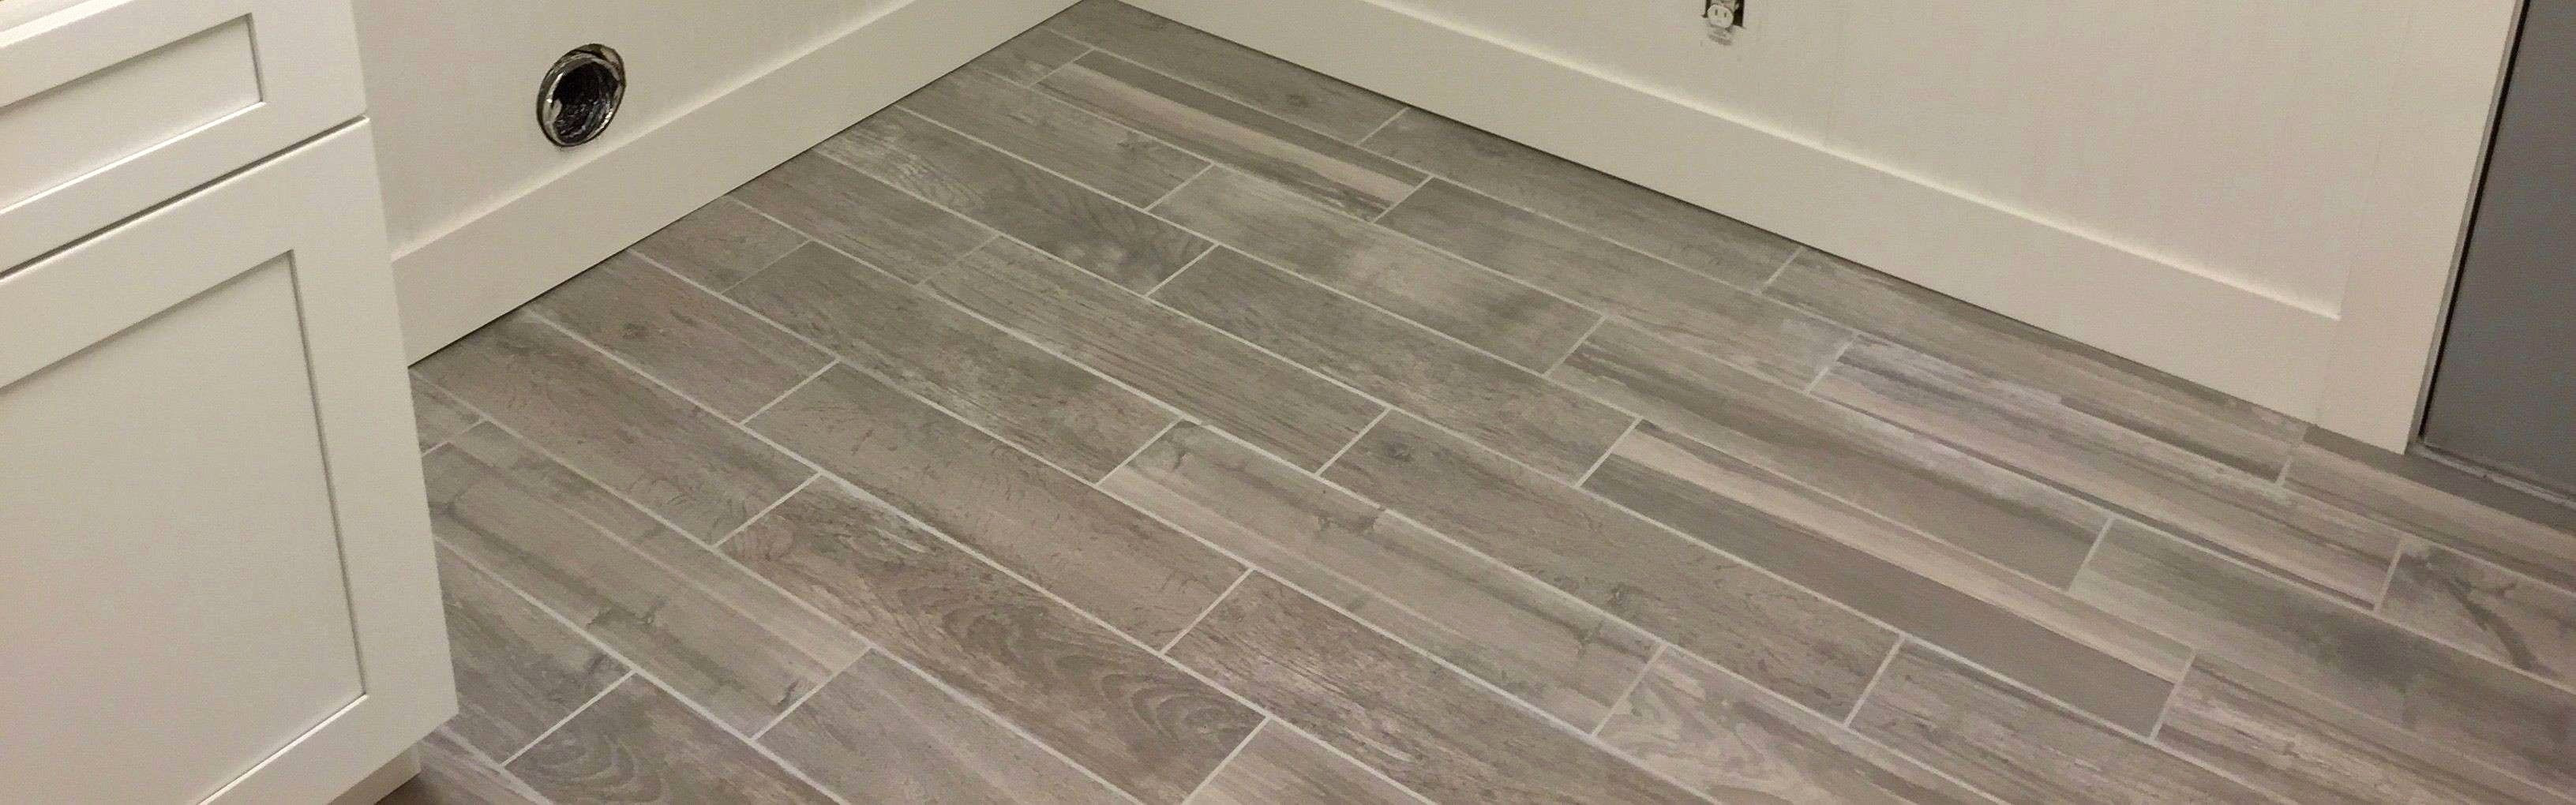 is tile flooring better than hardwood of 30 fresh best tile for bathroom floor porcelain or ceramic missing with regard to best tile for bathroom floor porcelain or ceramic beautiful 50 unique wood look tile flooring 50